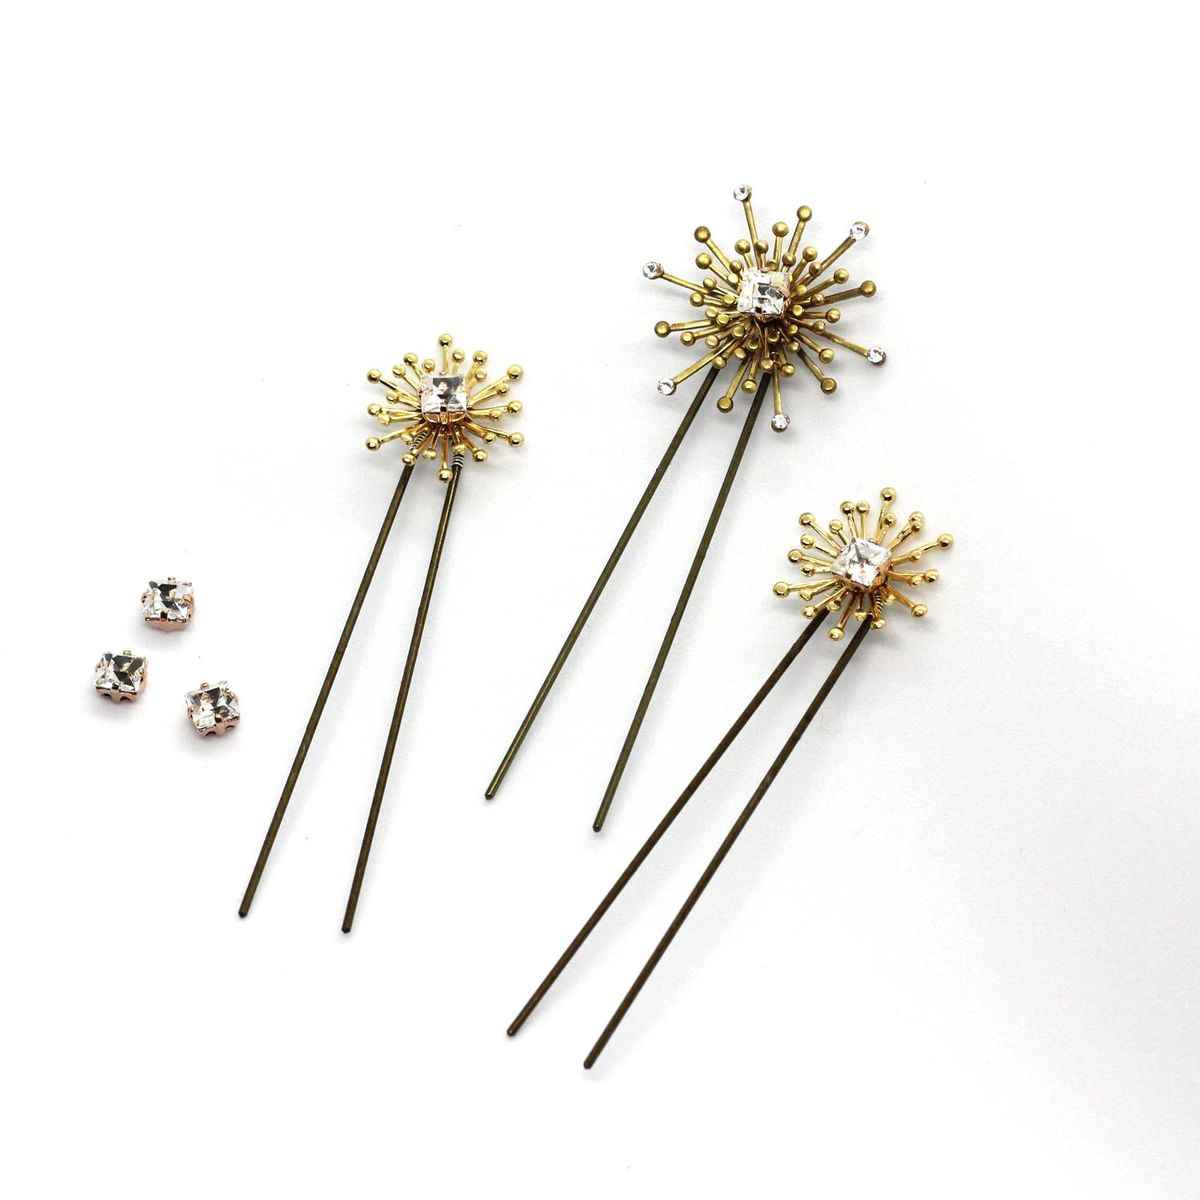 Cosmo Pins - product images  of